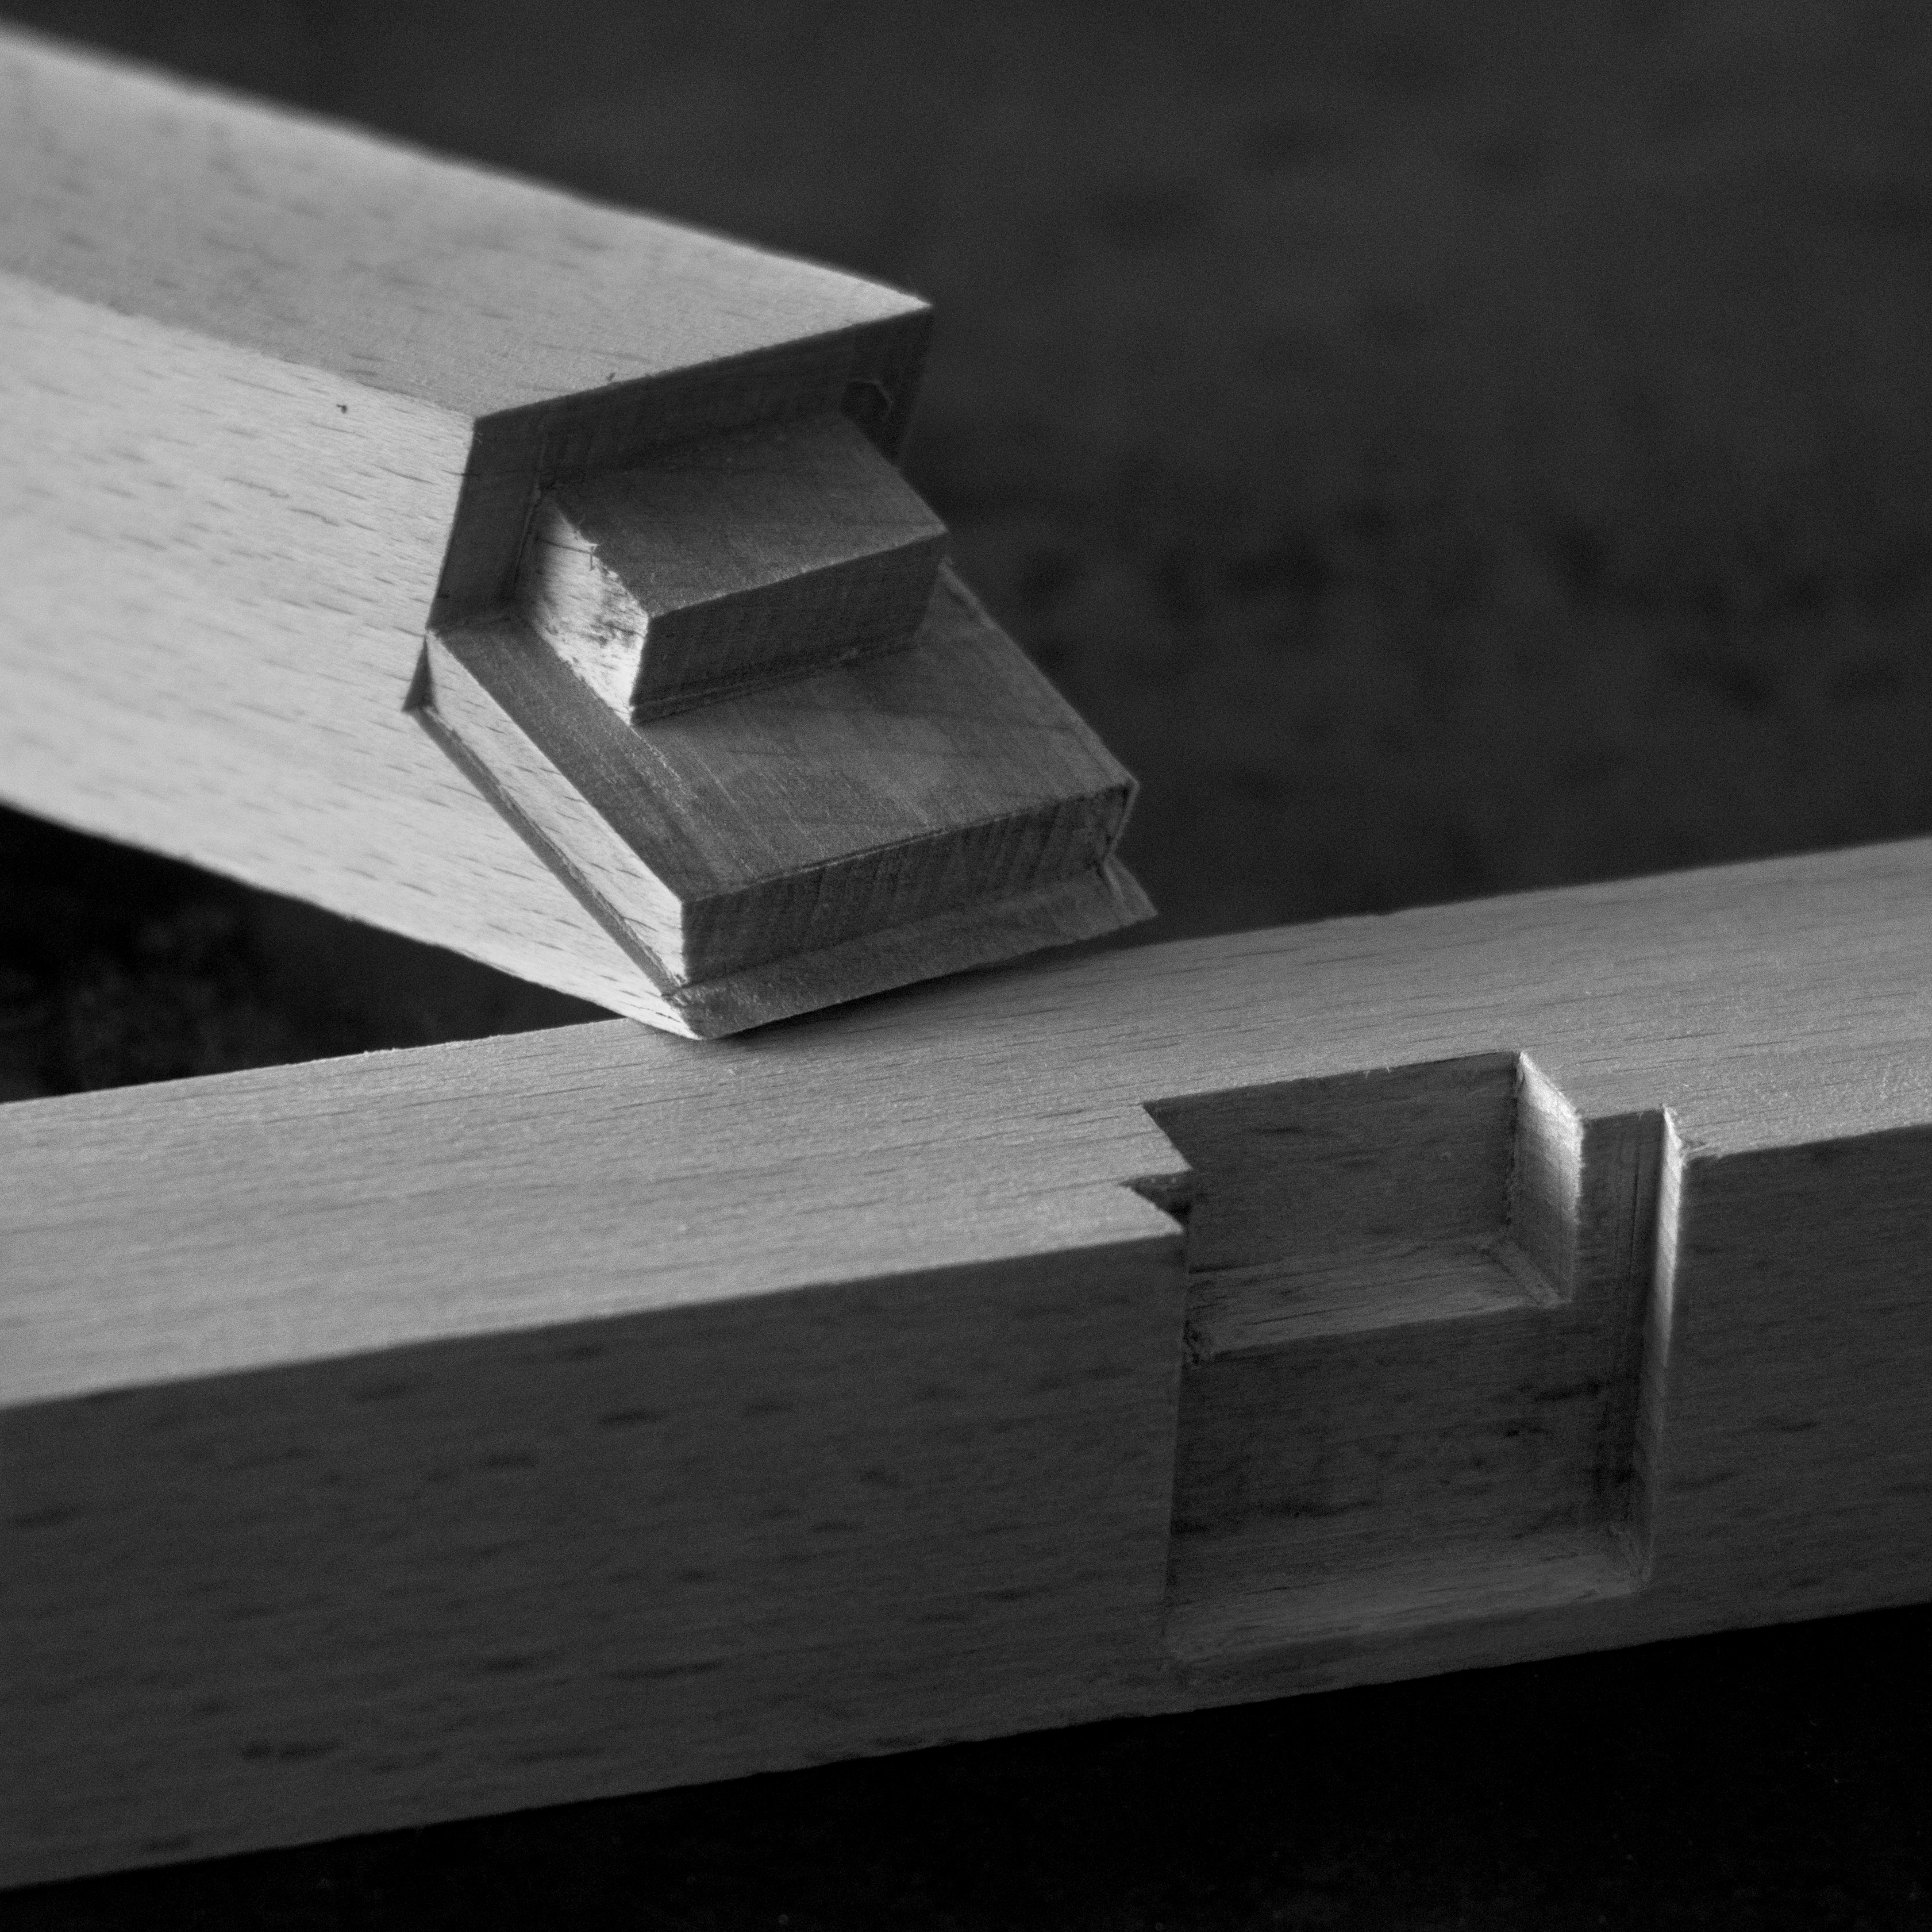 UKB Chair was inspired by the strength and precision of Japanese joinery